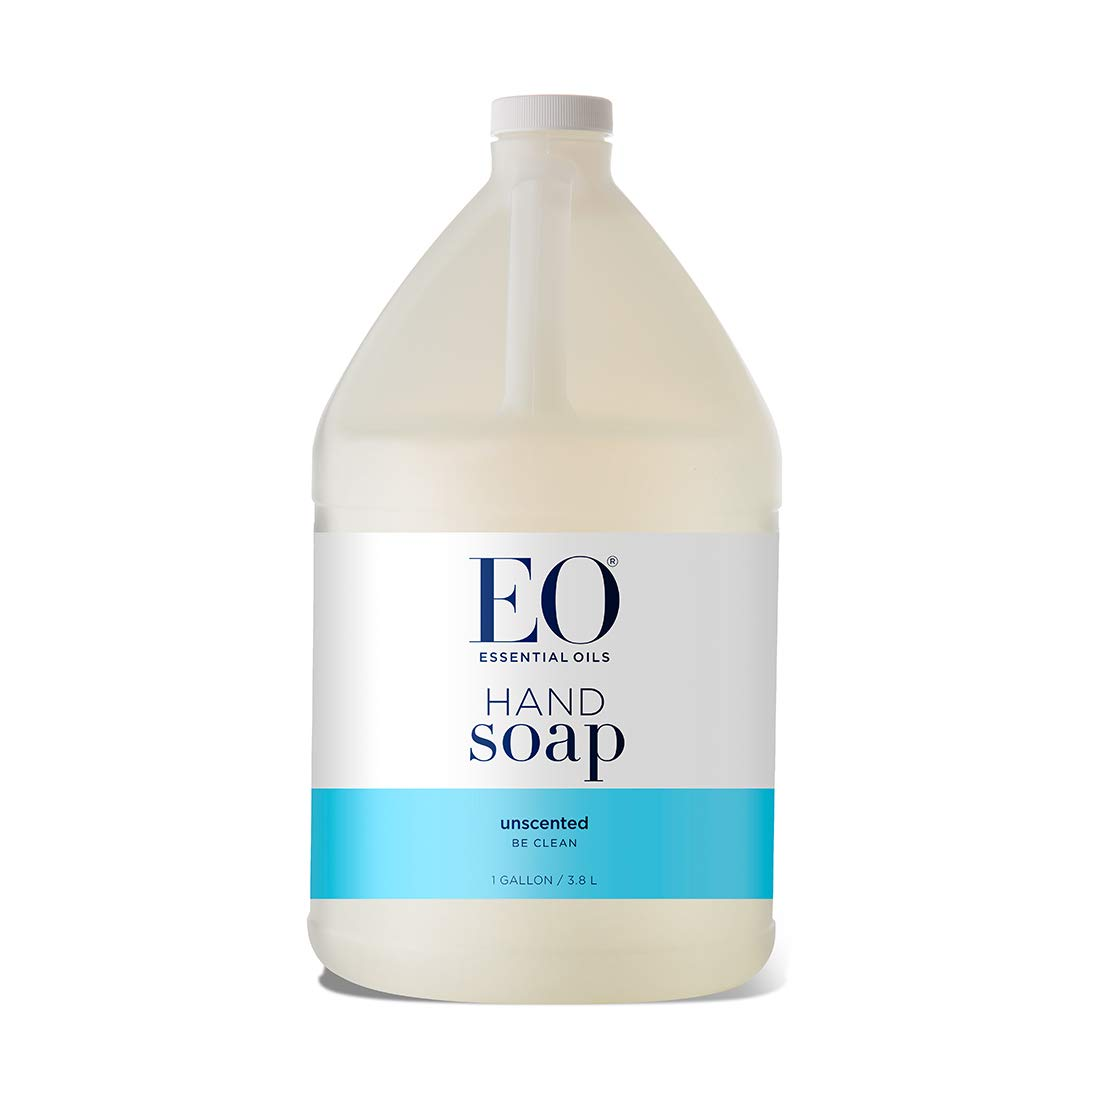 EO Botanical Liquid Hand Soap, Refill, Unscented, 128 Ounce (1 gallon)